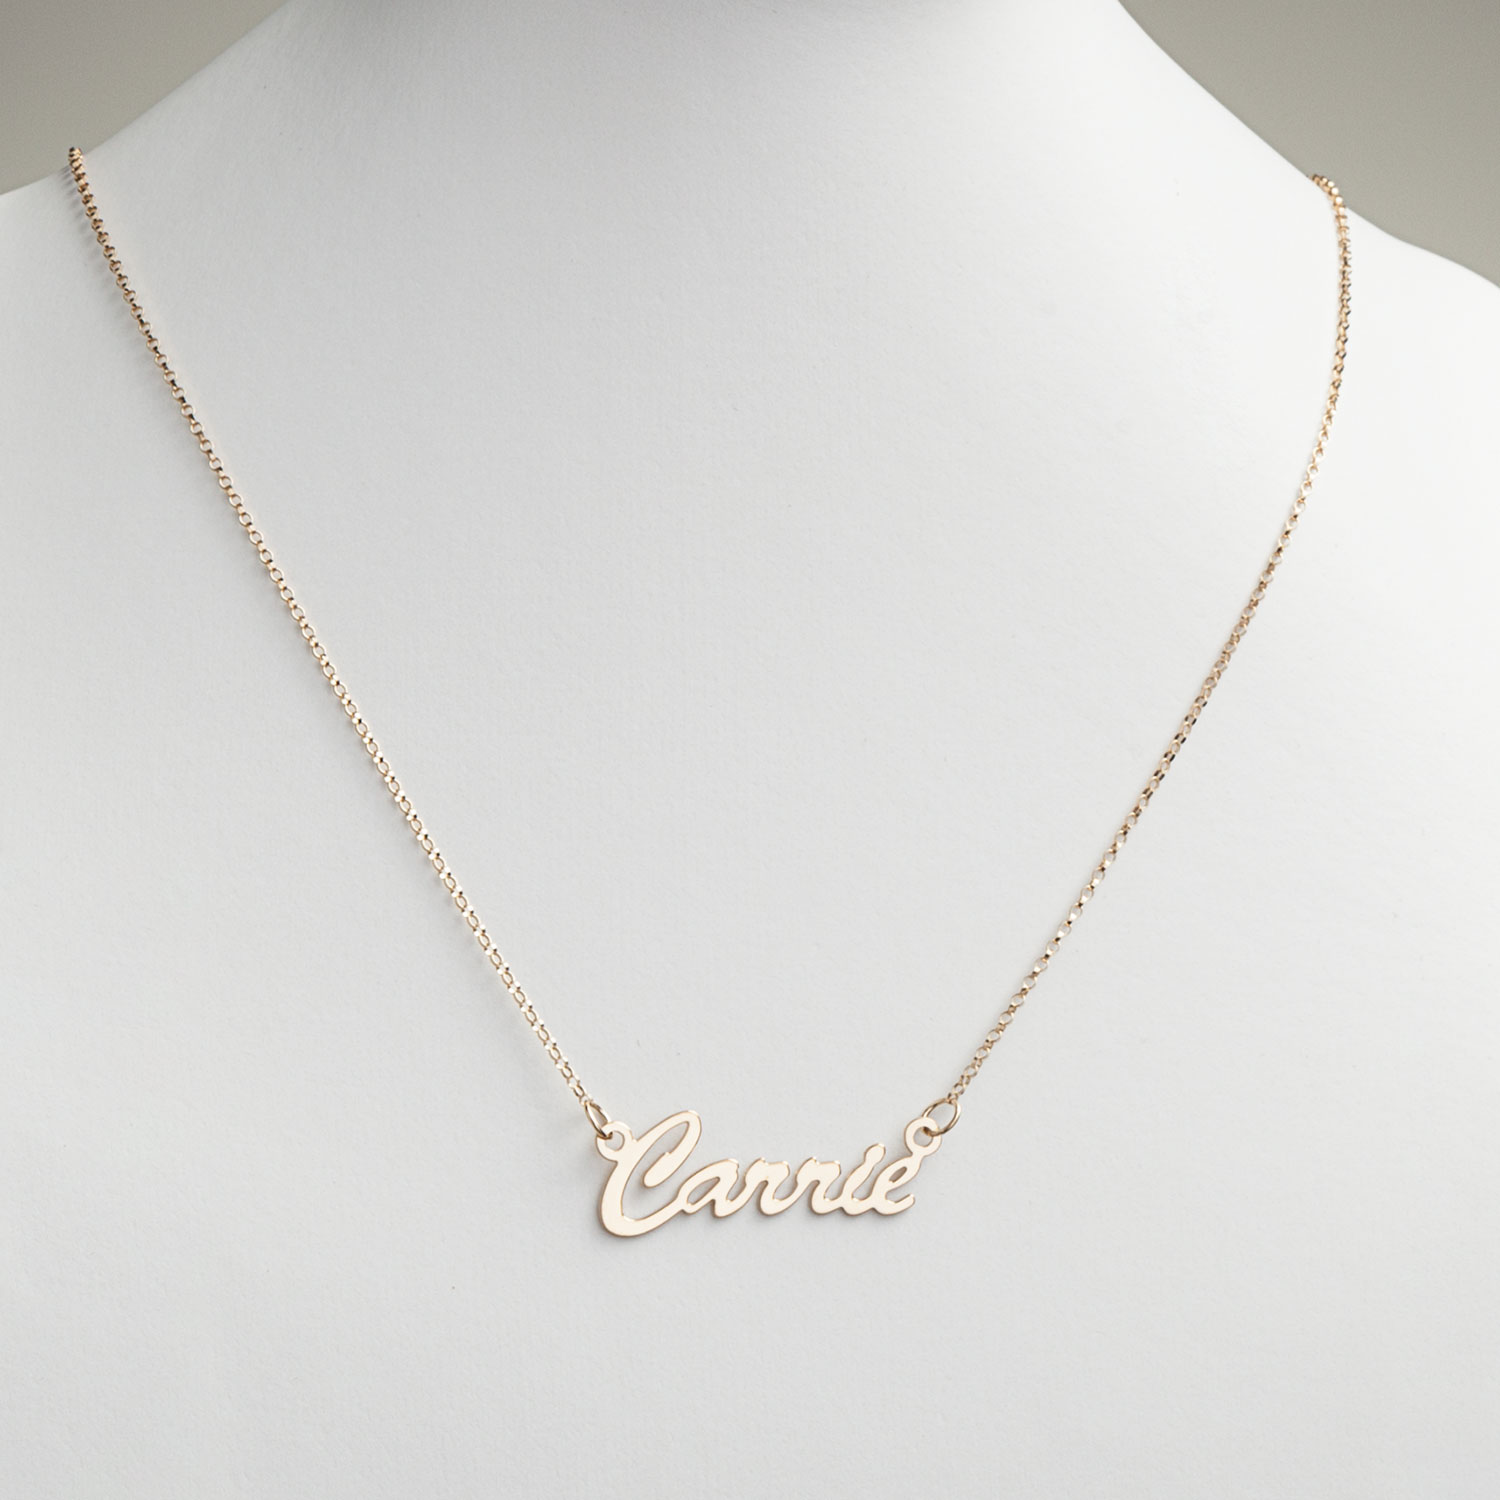 hollywood com over personalized silver name or children gold necklace sterling script ip walmart chain